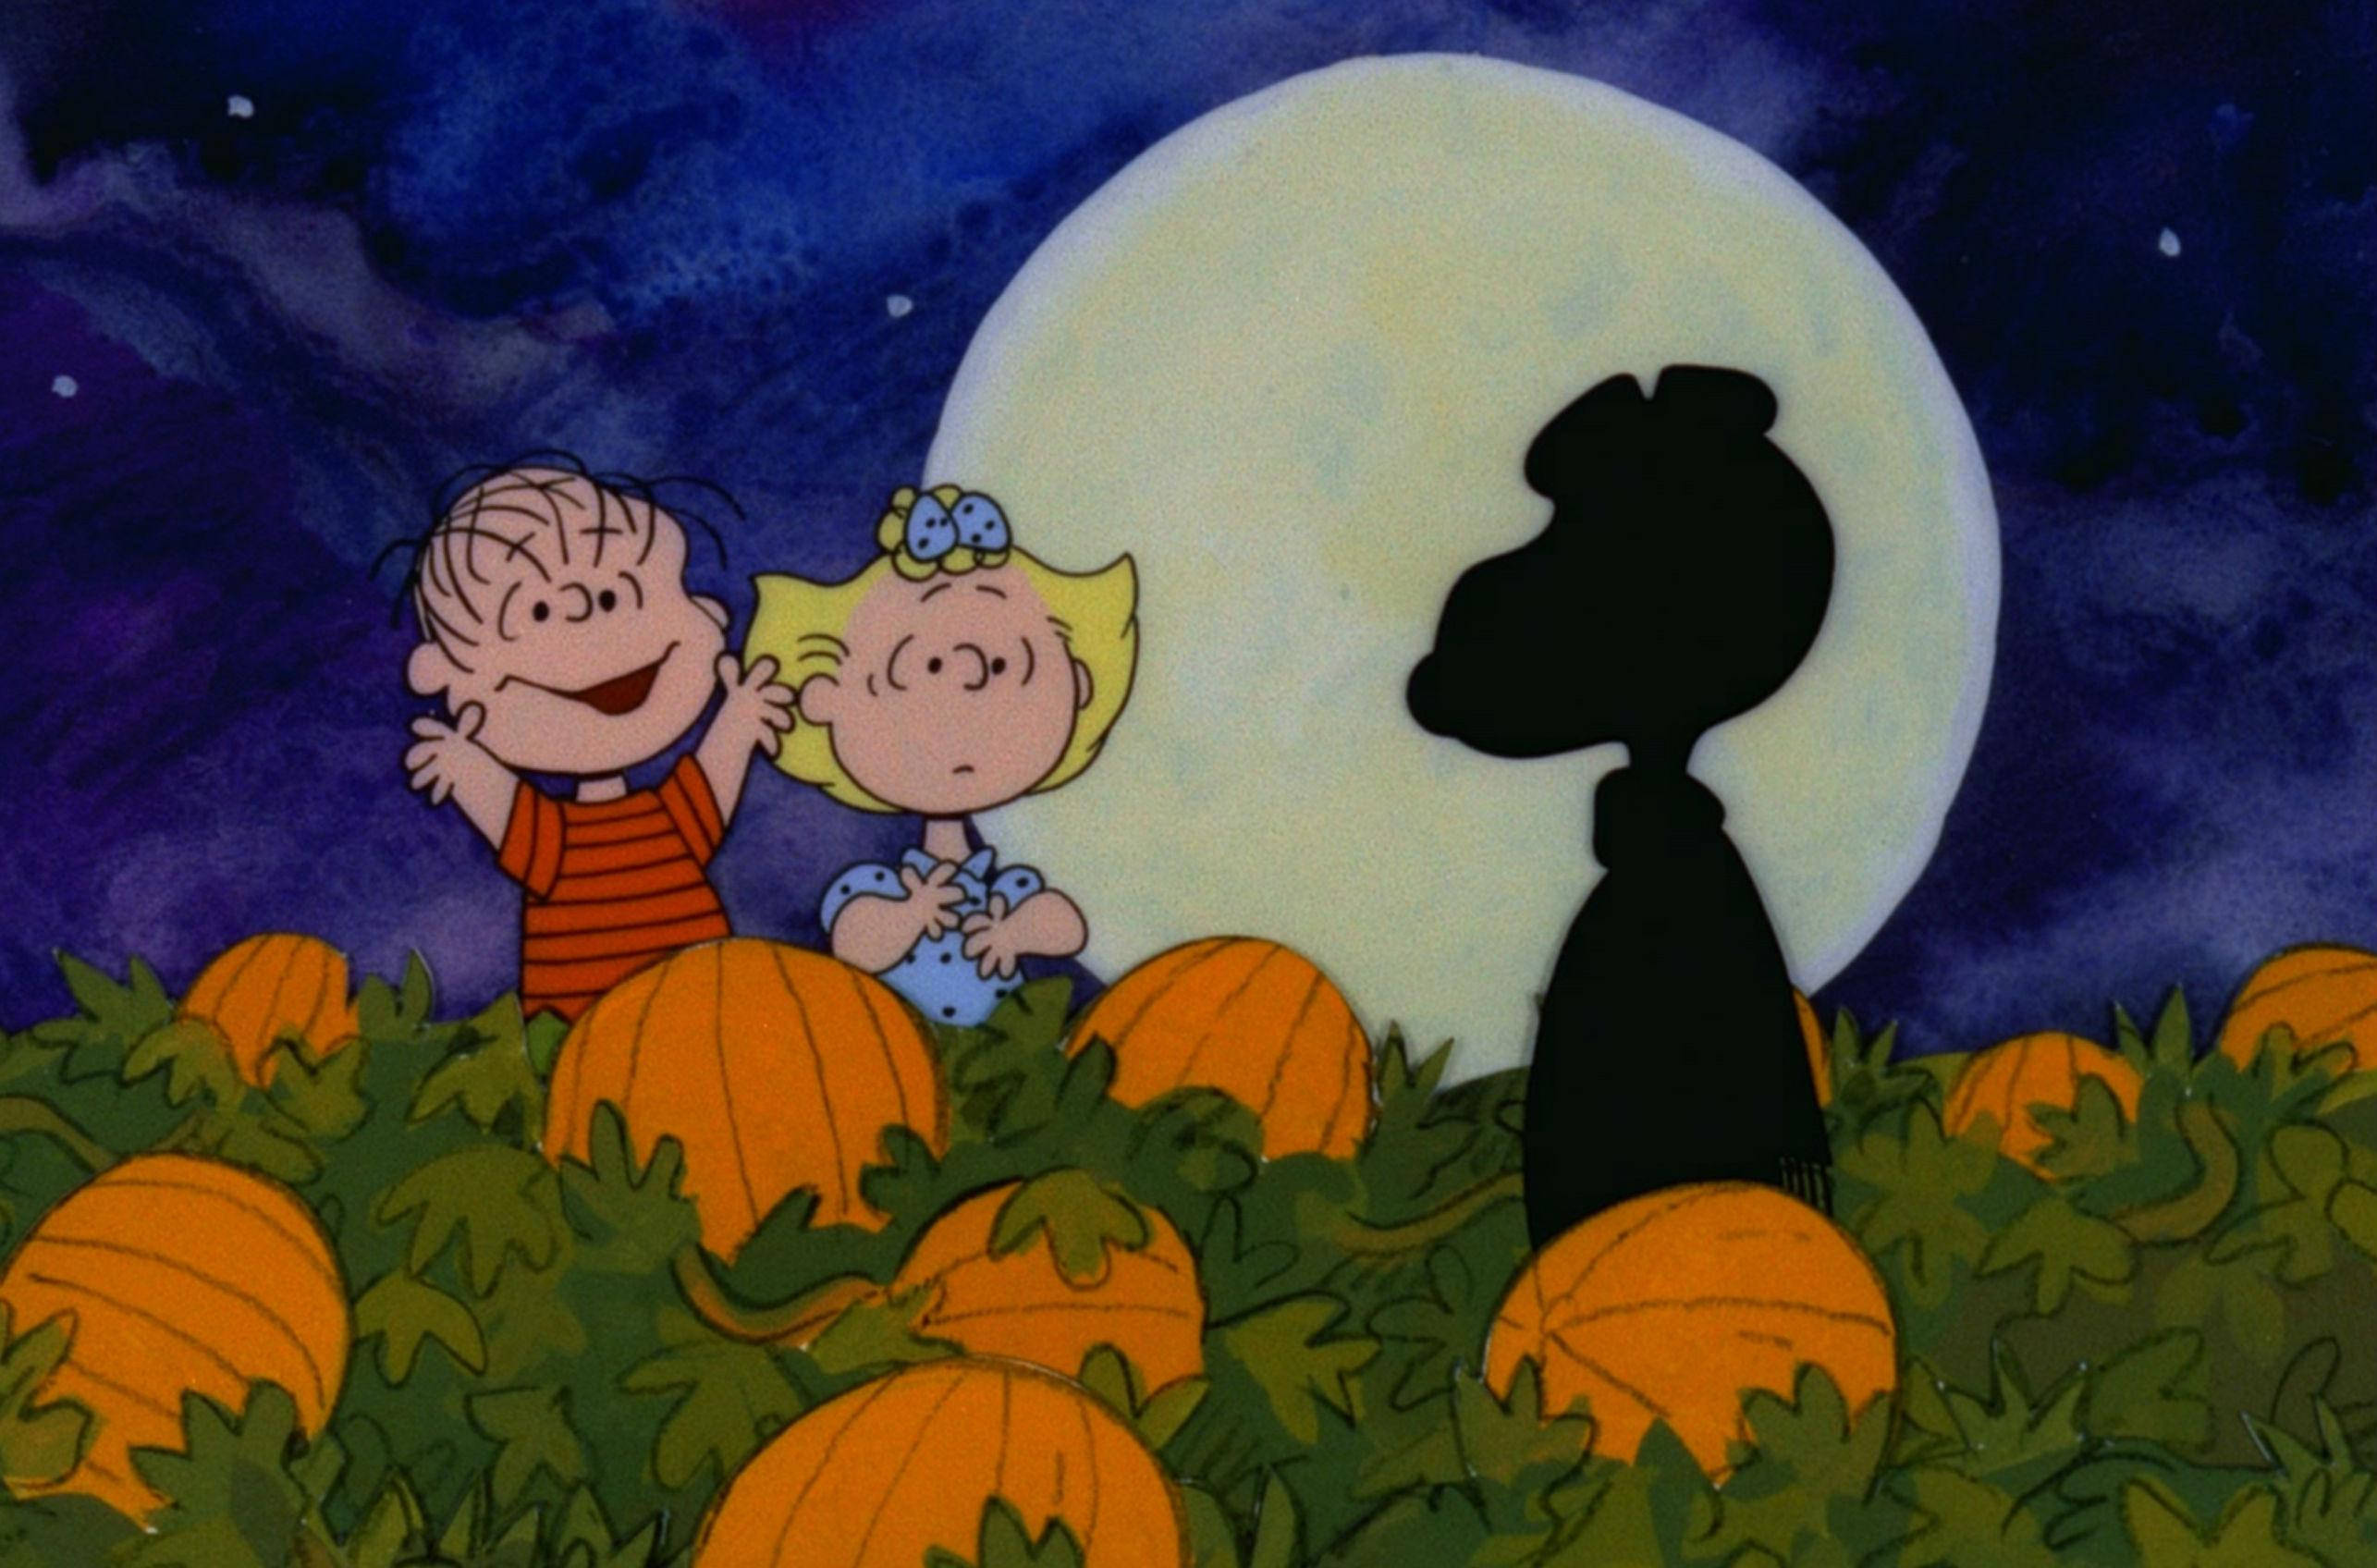 Charlie Brown Christmas Air Date 2019.It S The Great Pumpkin Charlie Brown 2019 Tv Air Date